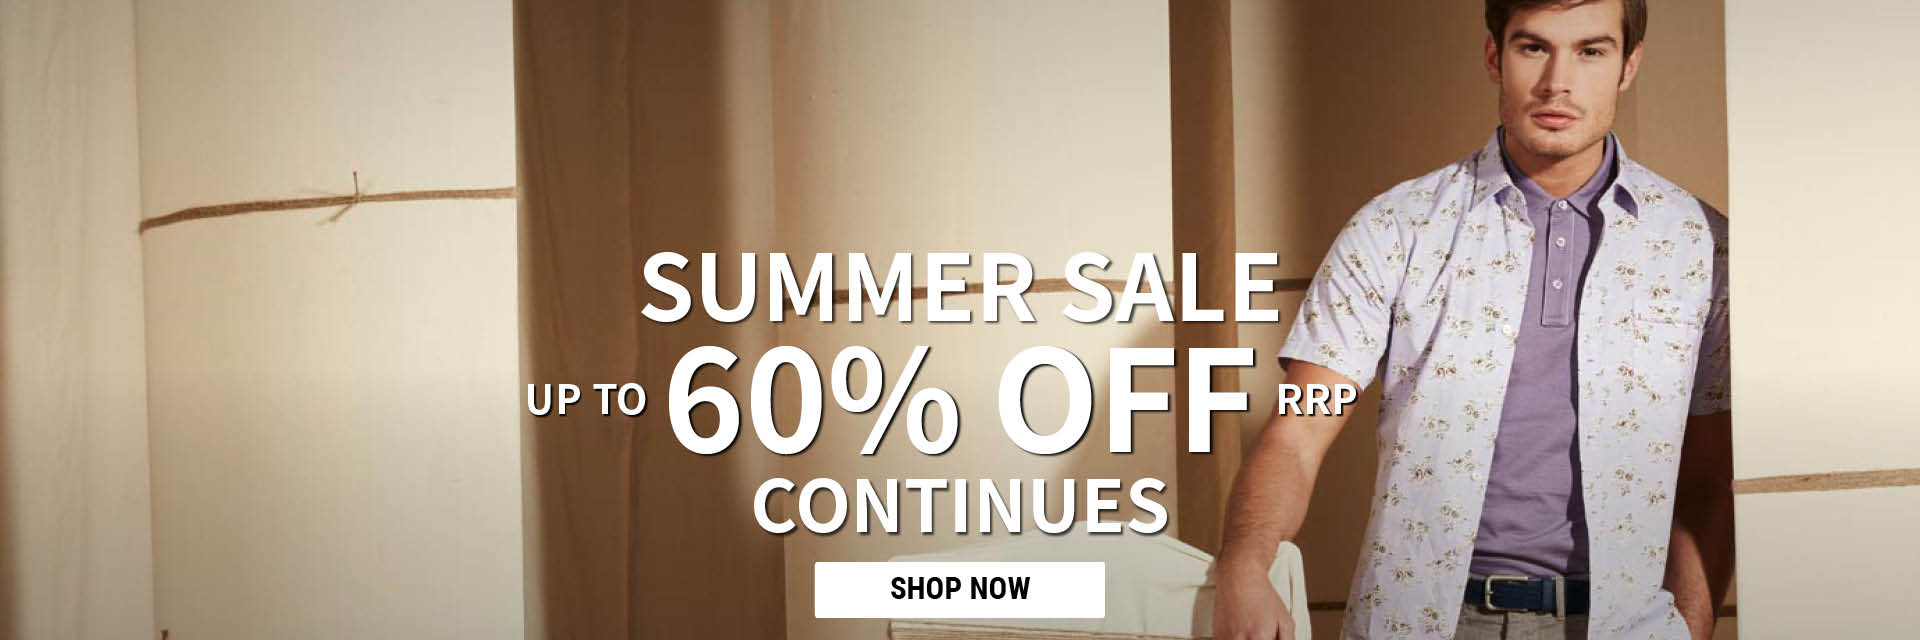 Summer Sale - Up To 60% Off